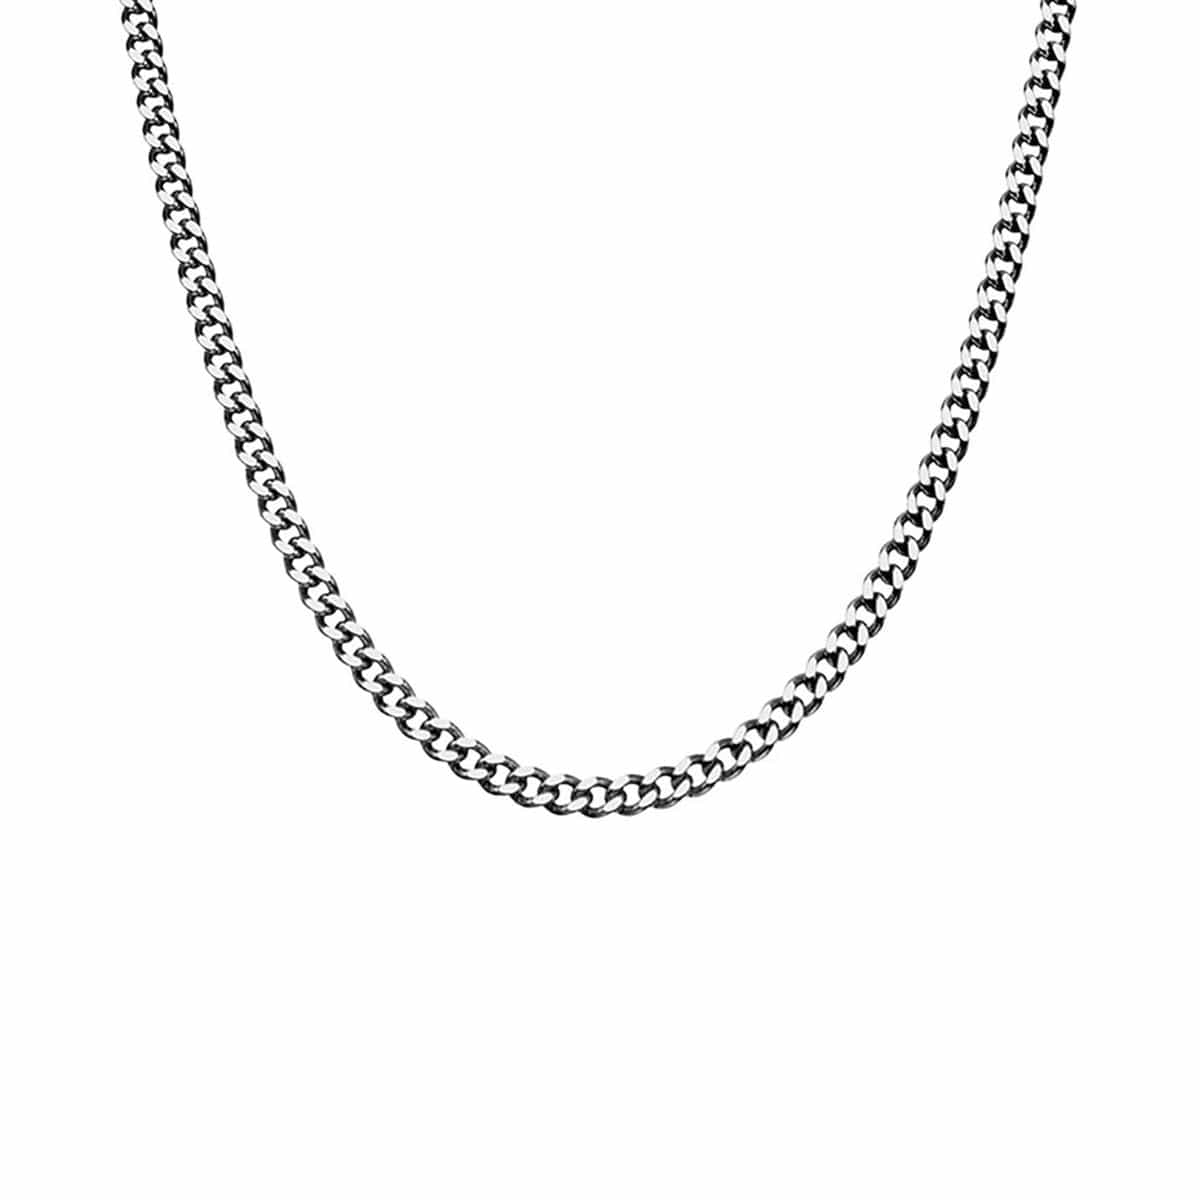 Silver Stainless Steel Polished 5mm Diamond Cut Design Chain Chains